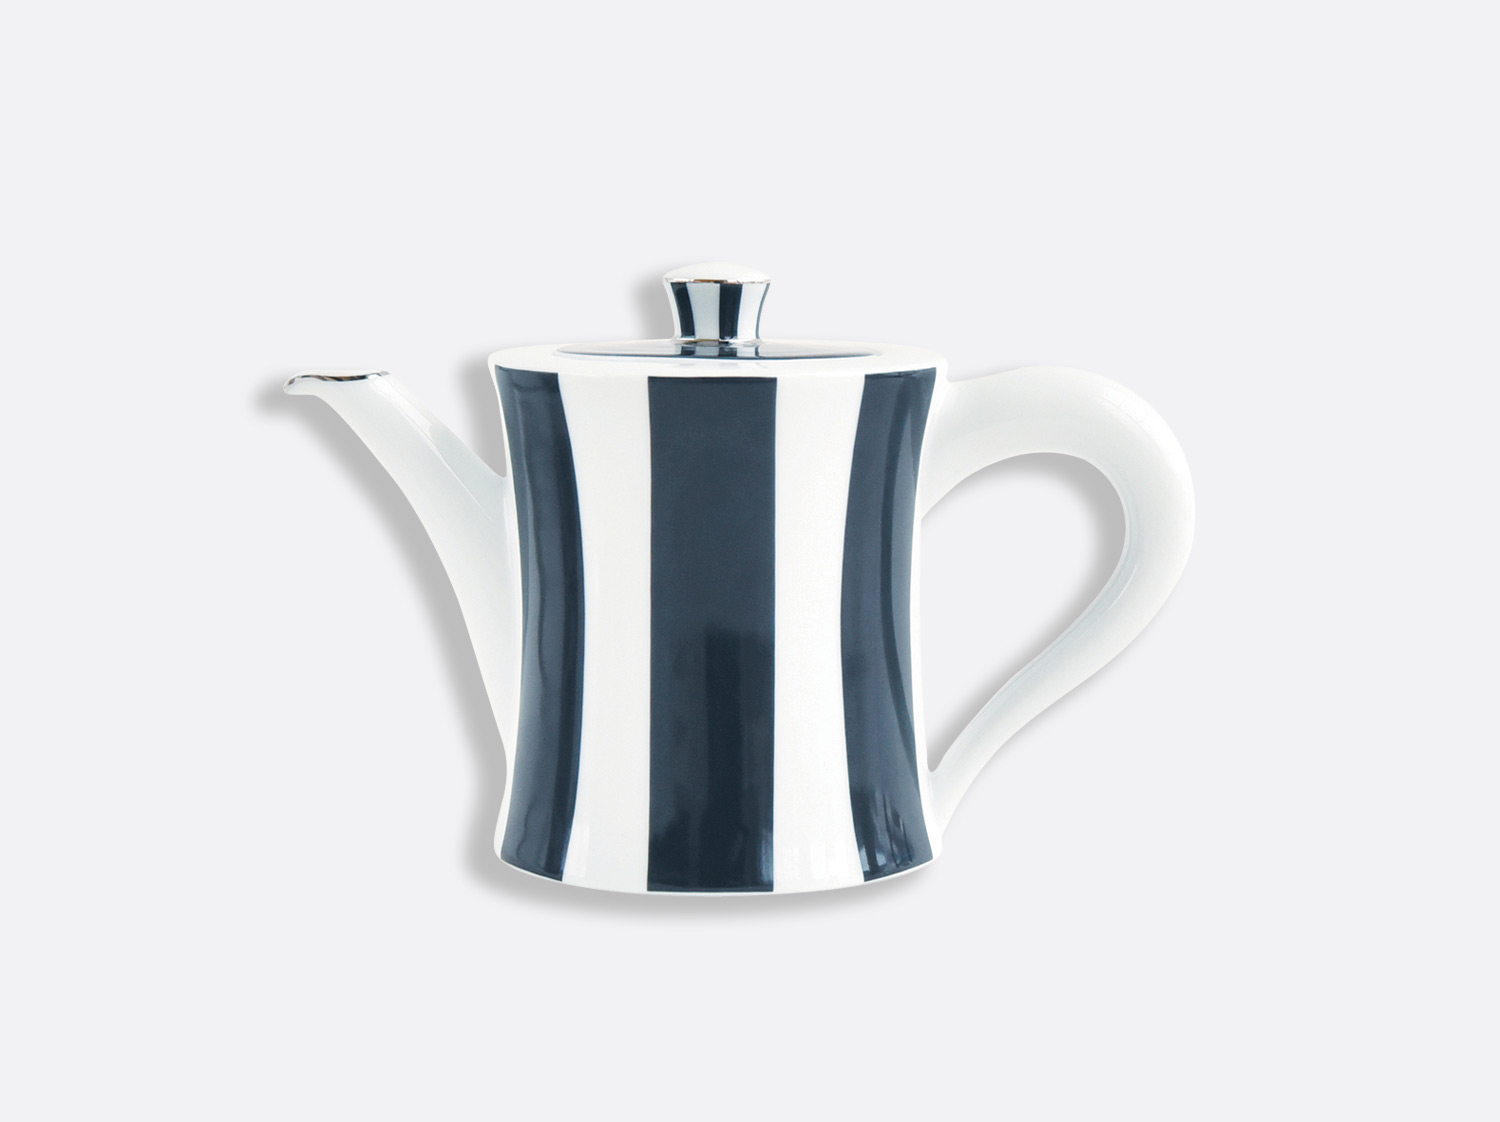 China Hot beverage server 40 cl of the collection Galerie Royale Bleu Nuit | Bernardaud